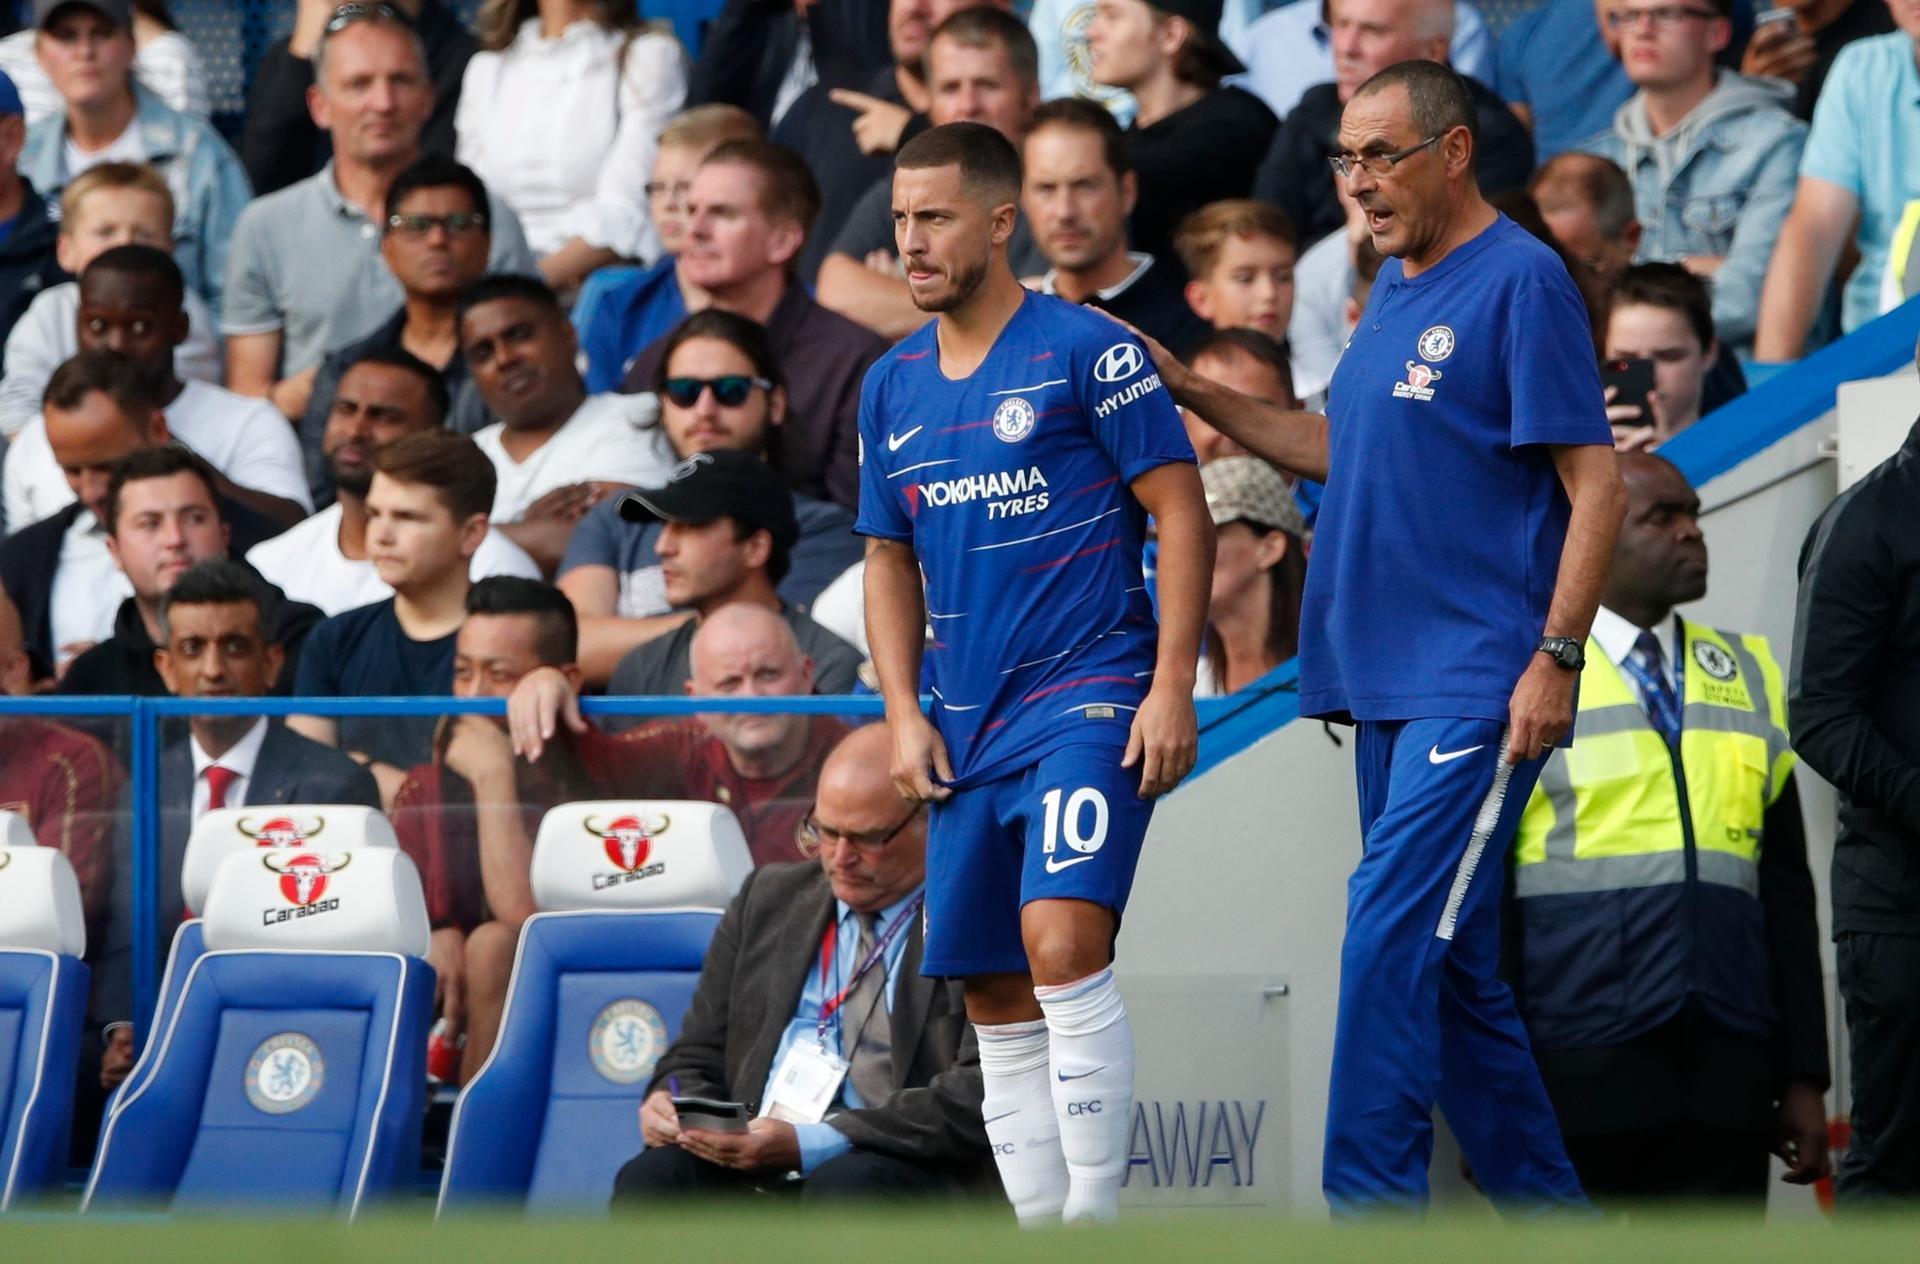 Mourinho believes Hazard is the key for Chelsea's title challenge